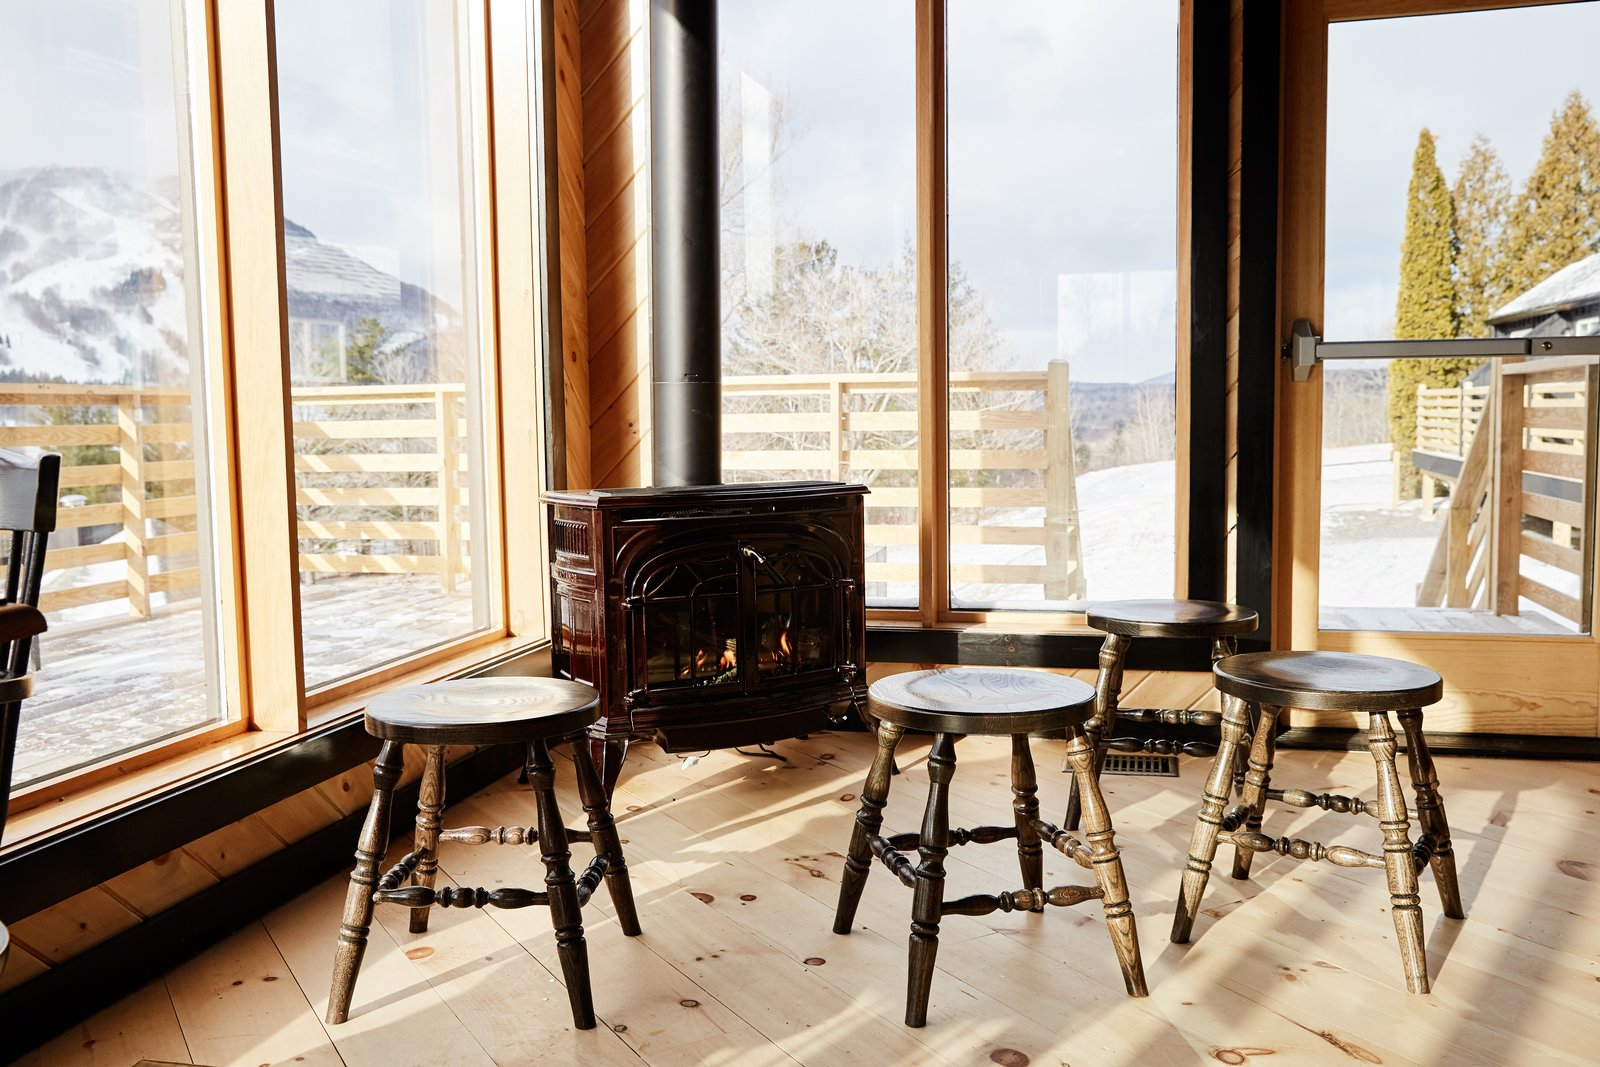 Living Room, Stools, Light Hardwood Floor, and Wood Burning Fireplace The restaurant looks out to 270-degree views of the Catskill Mountains and takes in ample natural light.  Photo 11 of 14 in A Modern Mountain Lodge That Will Make You Love Winter Like Never Before